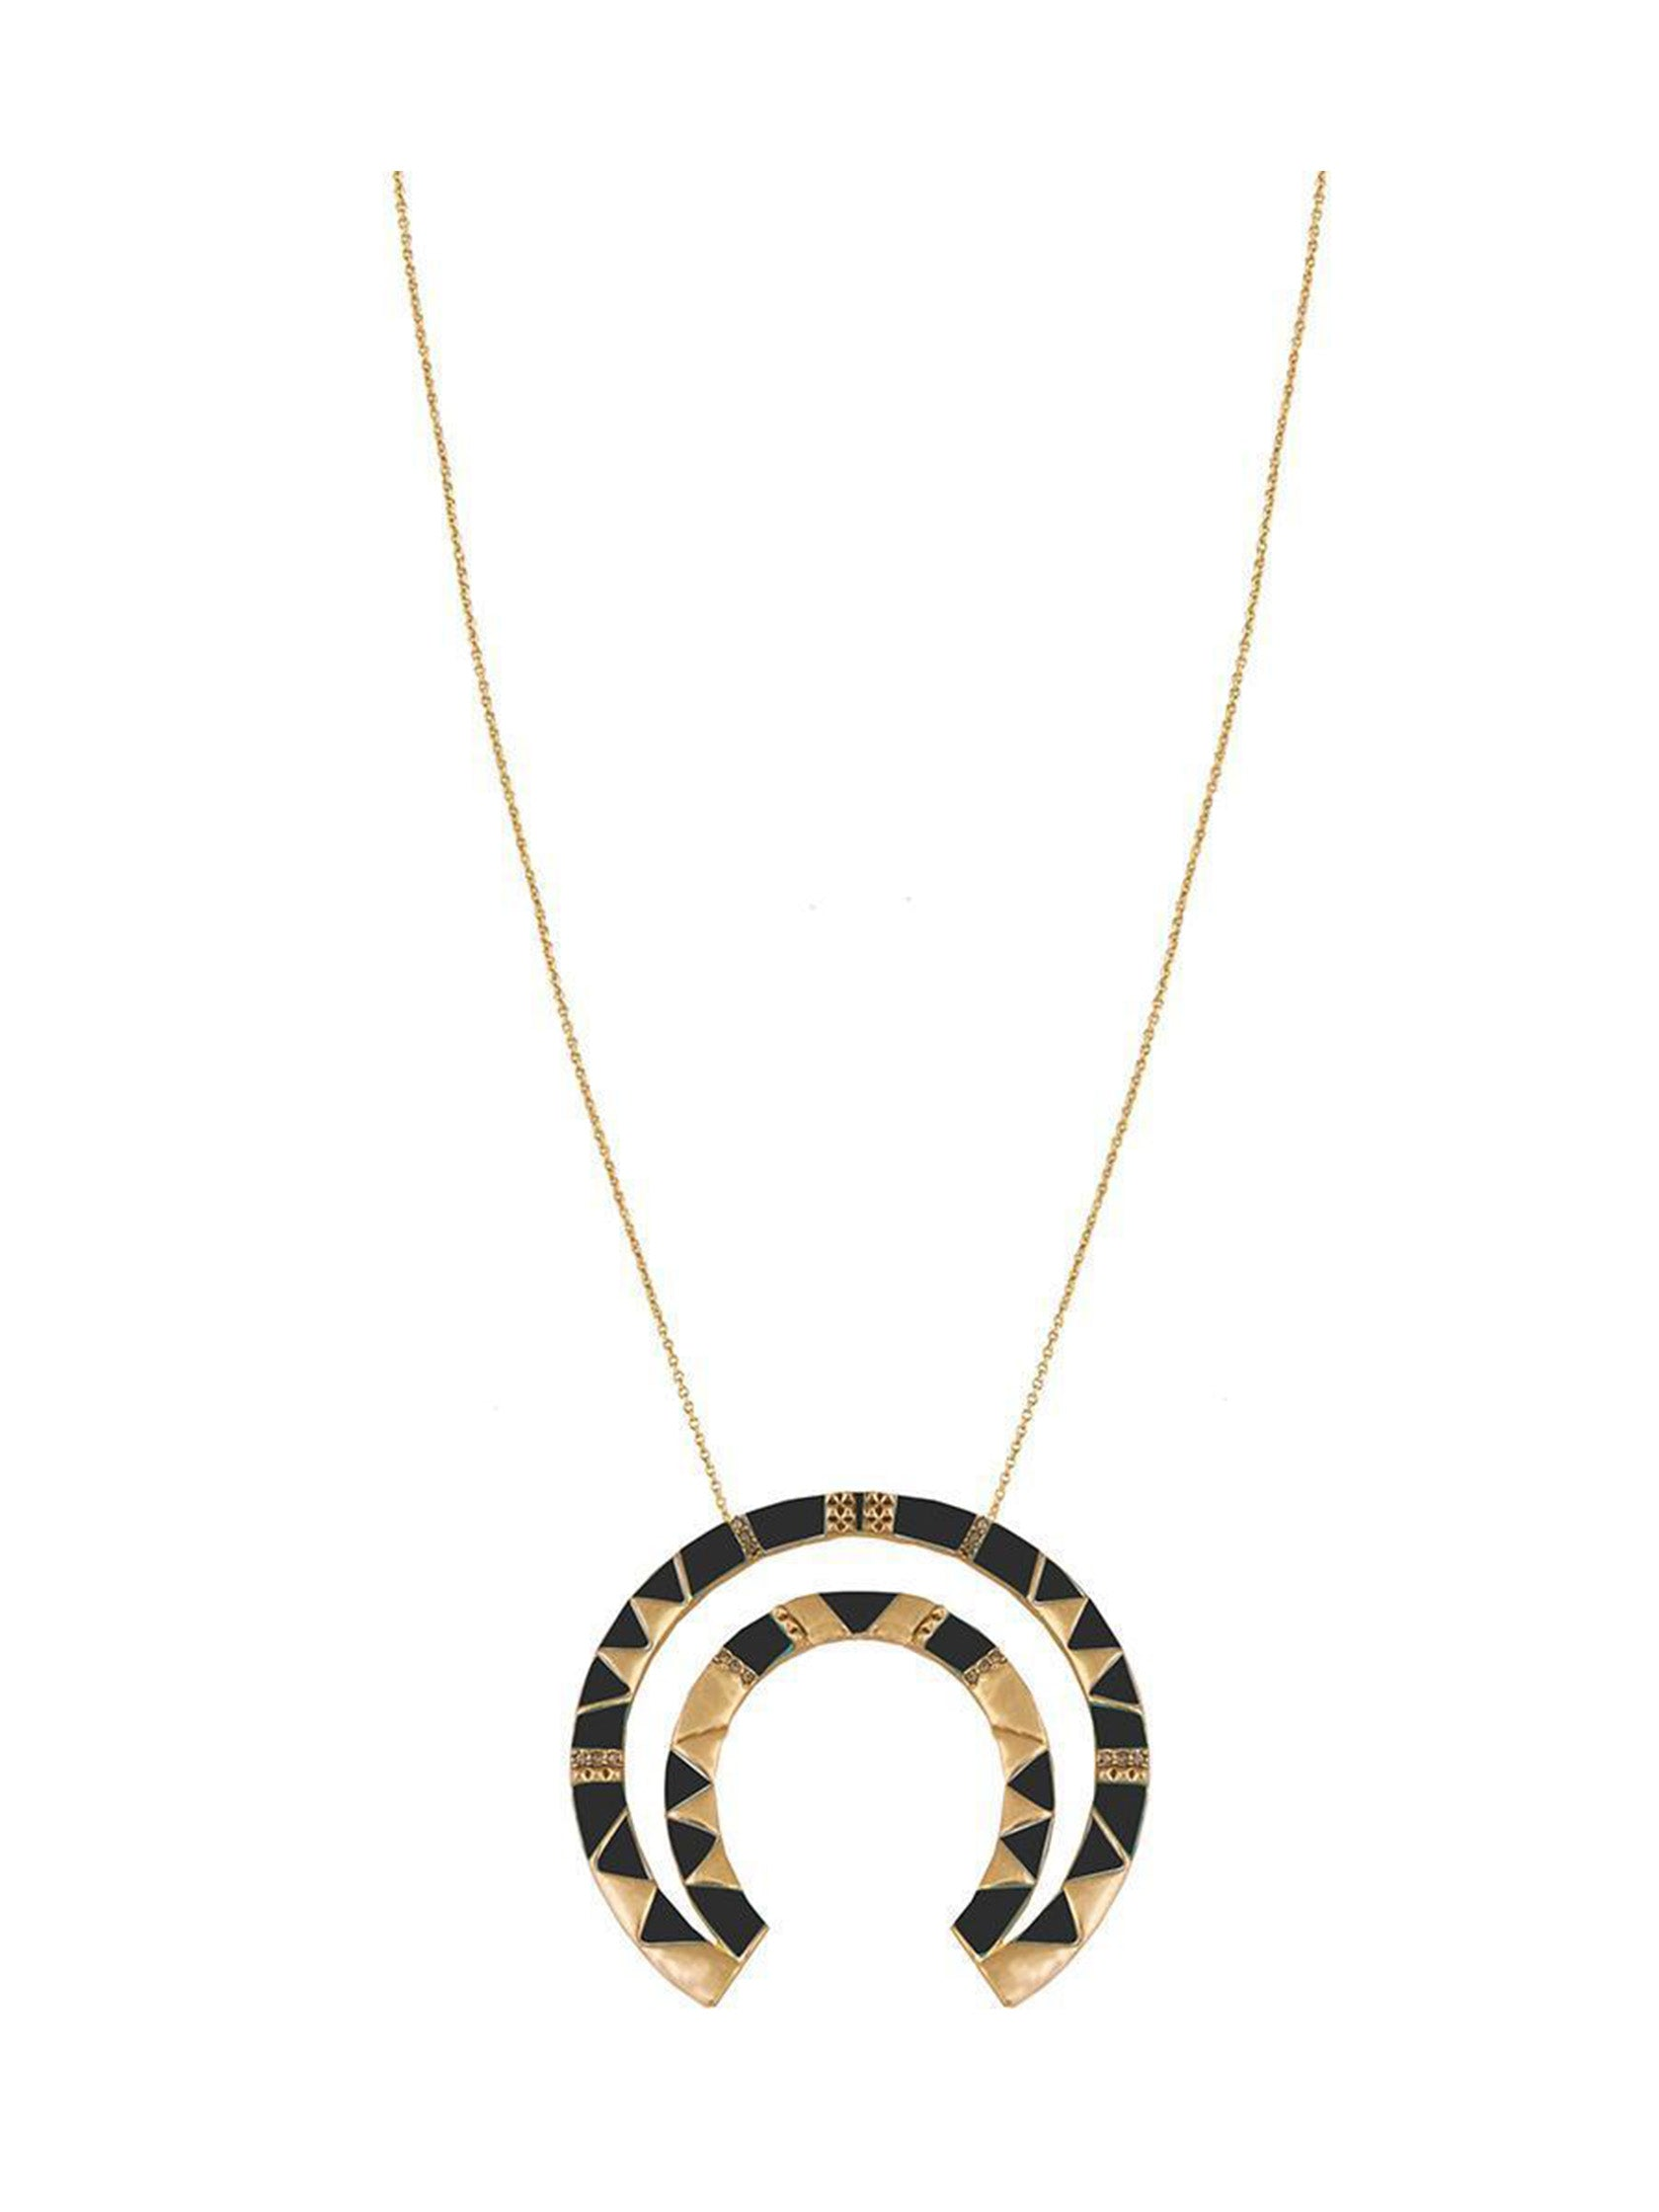 Girl wearing a necklace rental from House of Harlow 1960 called House Of Harlow Curve Aztec Pendant Necklace